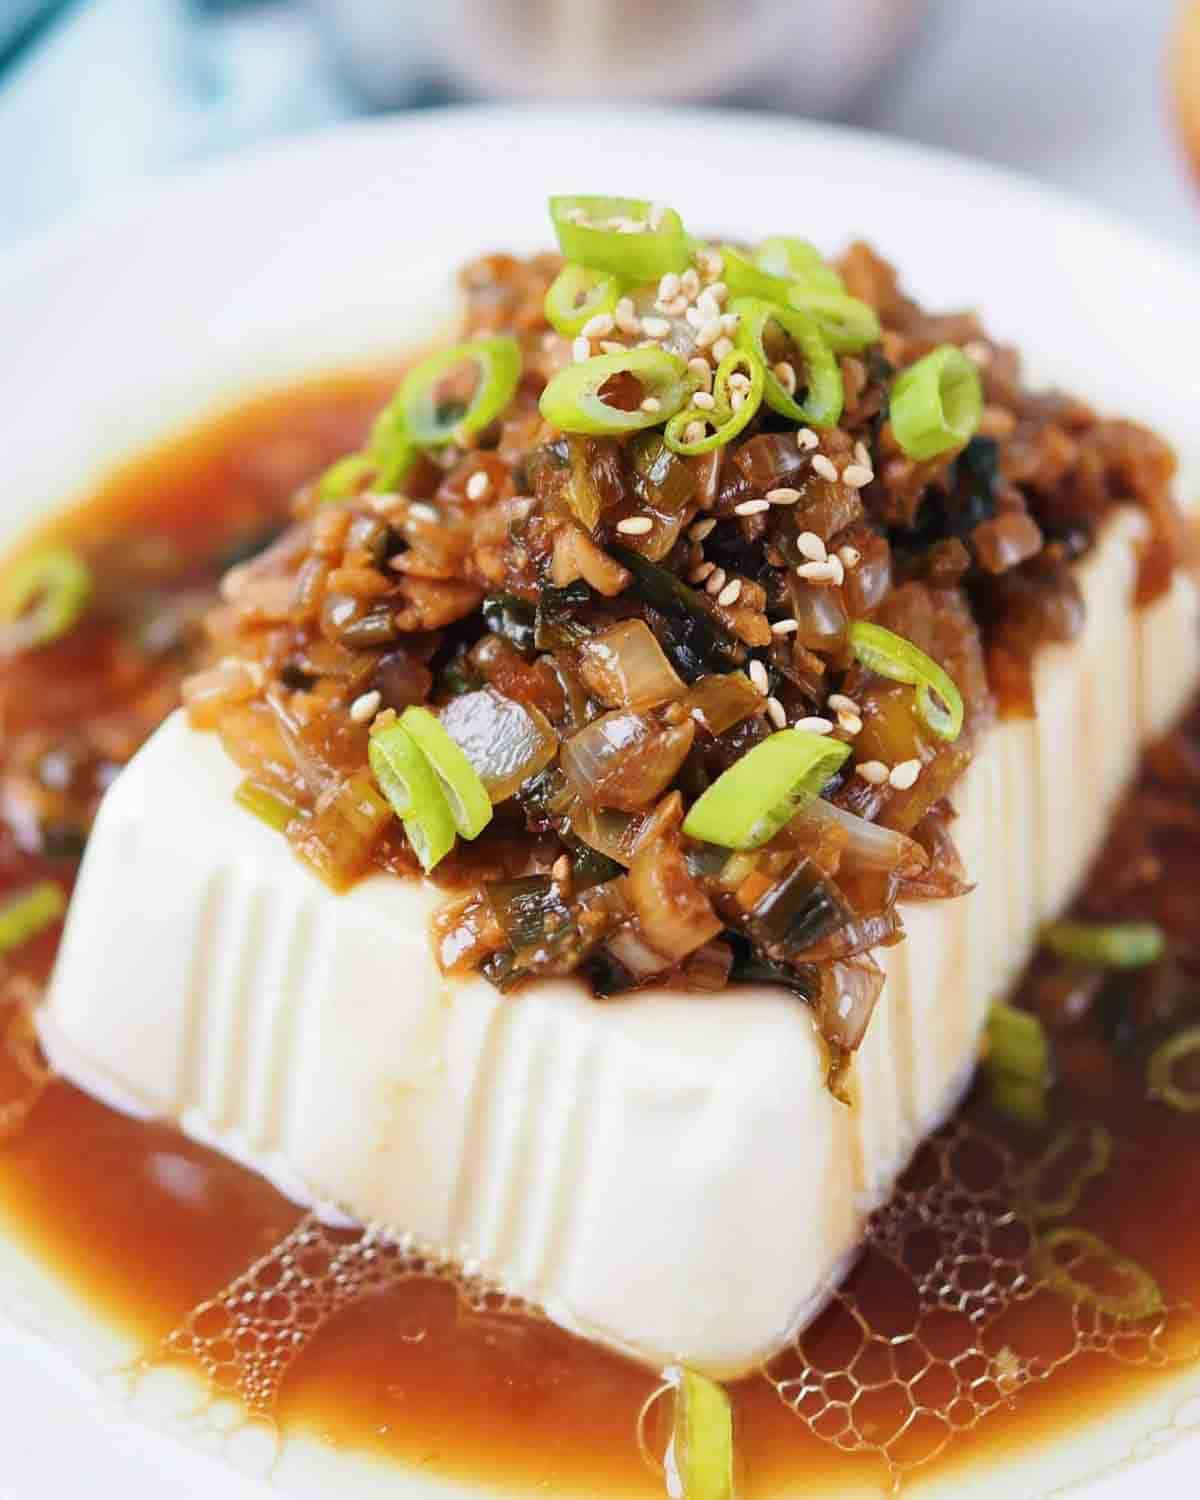 Tofu served on a whit plate topped with chopped scallions and sesame seeds.